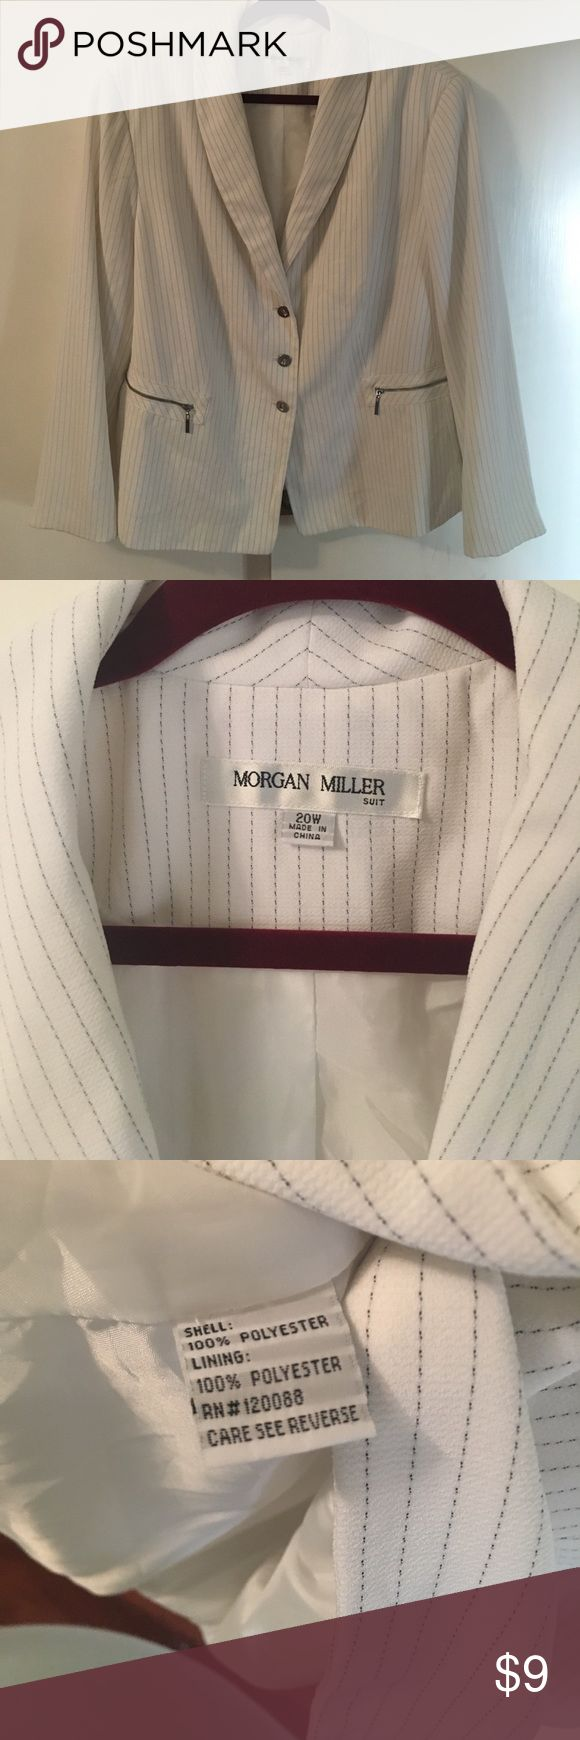 Morgan Miller 20W White w/Black pin stripe Blazer Morgan Miller 20W White w/Black pin stripe Blazer great condition Morgan Miller Jackets & Coats Blazers